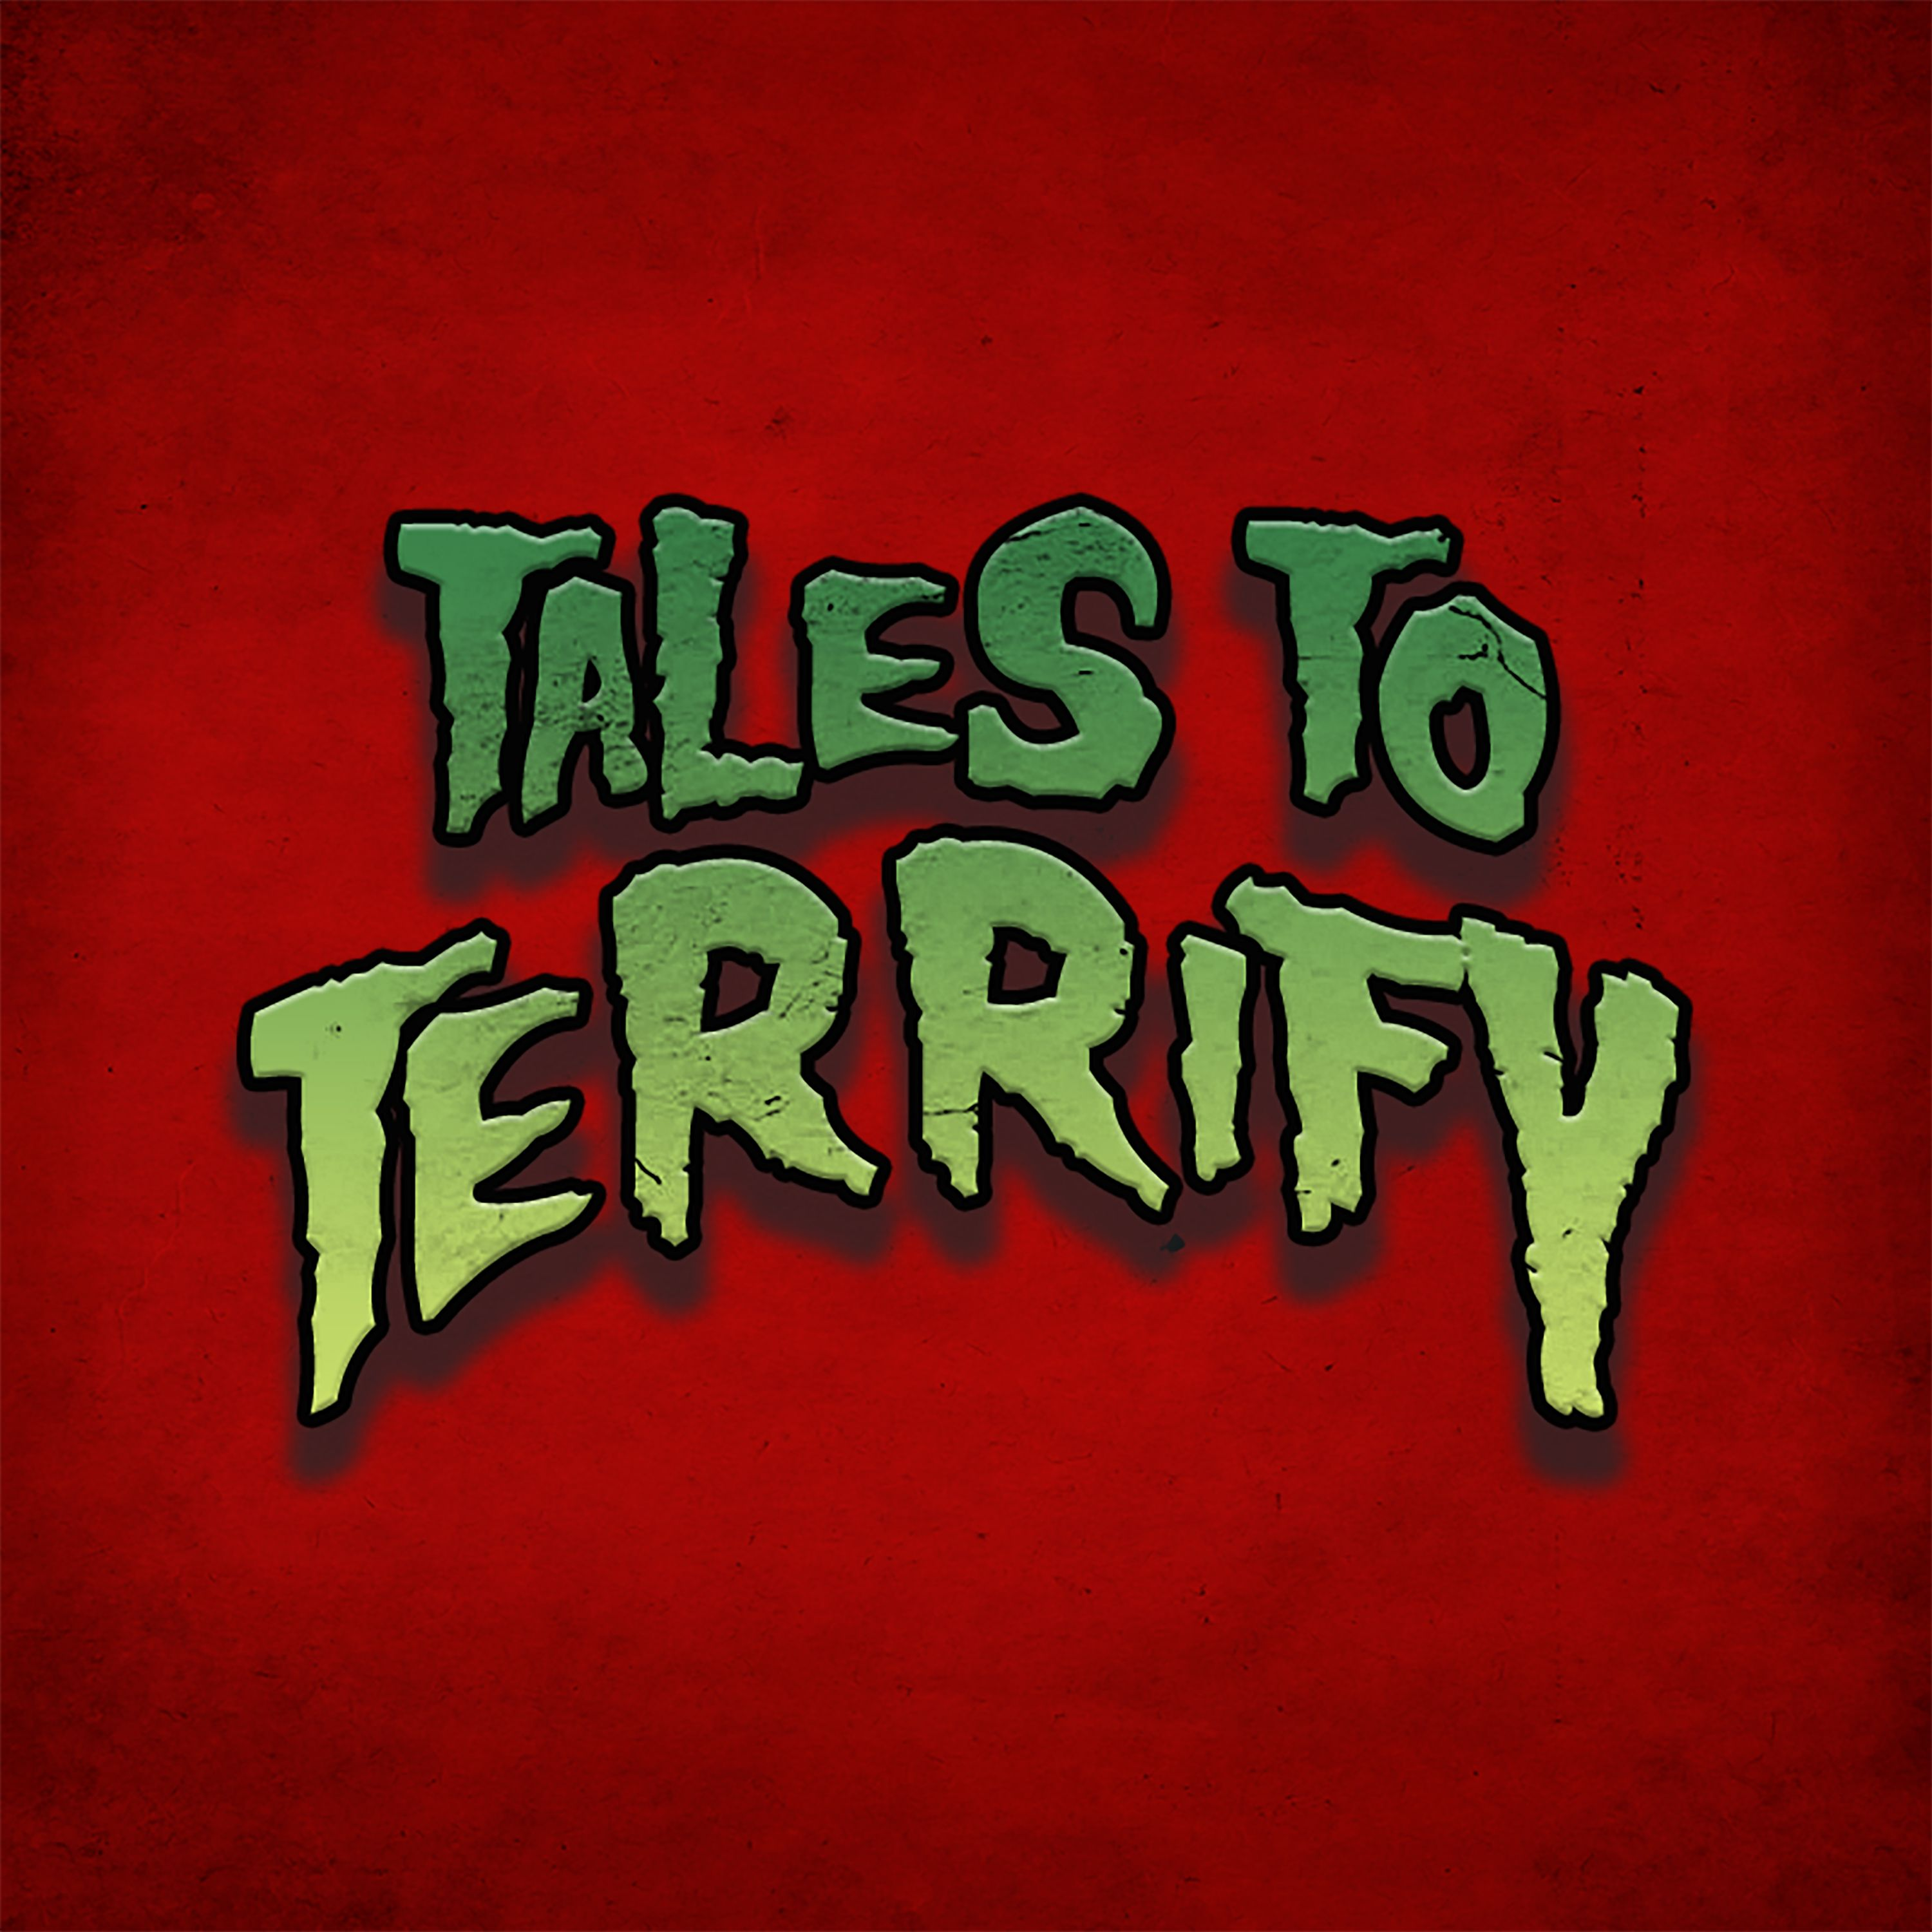 Tales to Terrify 377 Penny Tailsup Arthur Machen